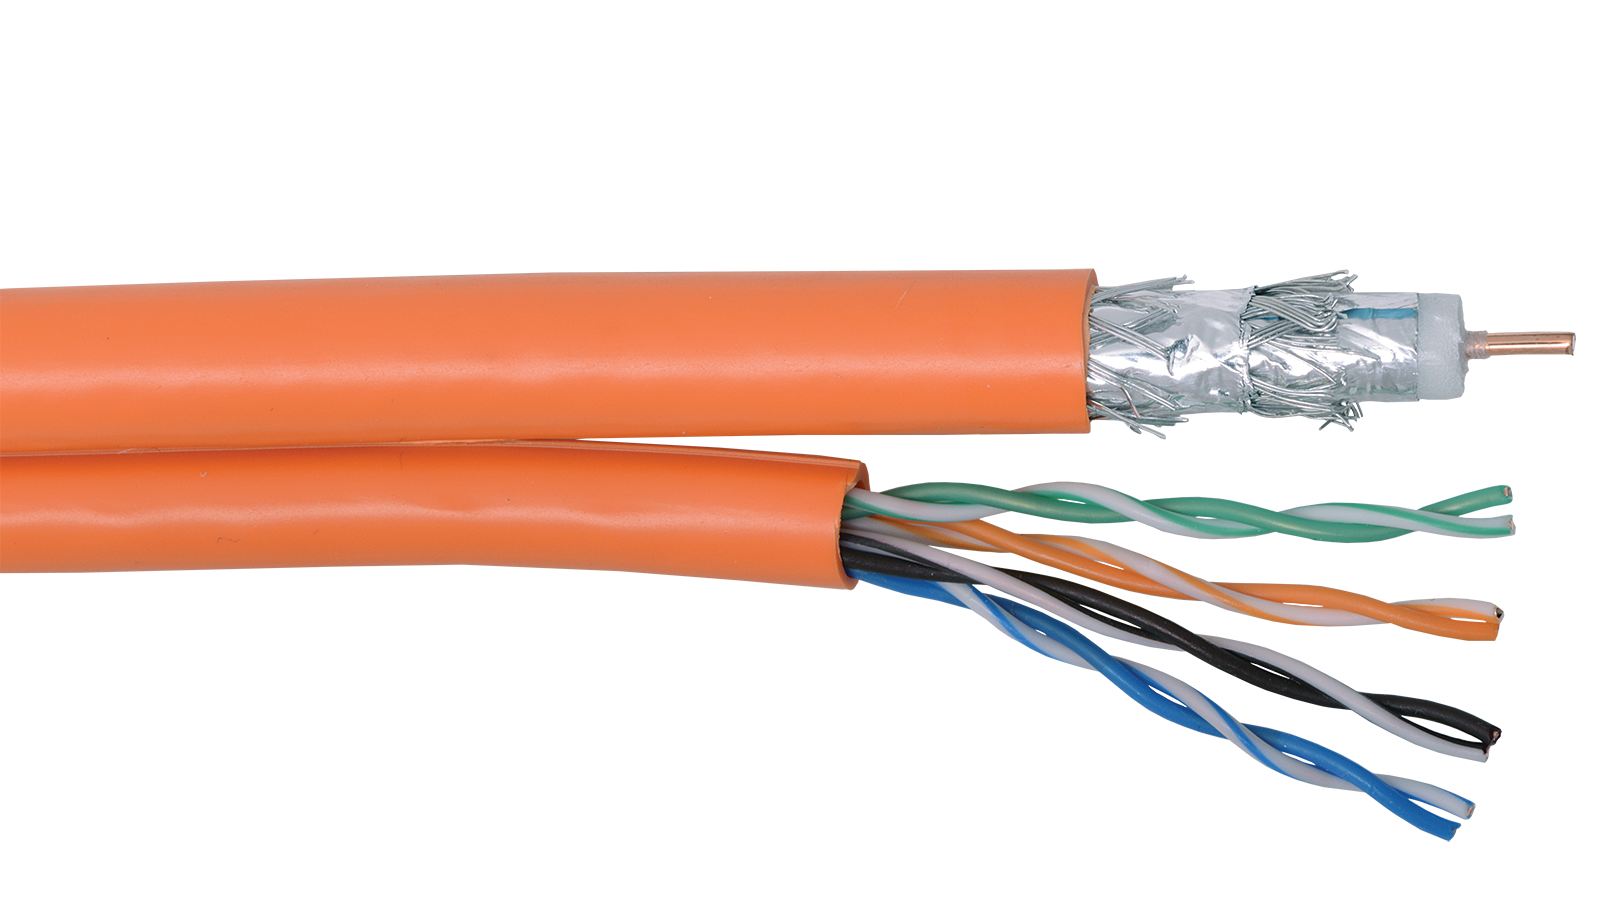 Cebus Cm 1n1 Siam Structured Solutions Rg6q Bc Category 5e Intercom Wiring Diagram 1024 X 768 Png 104kb 3m Parallel Composite Cable